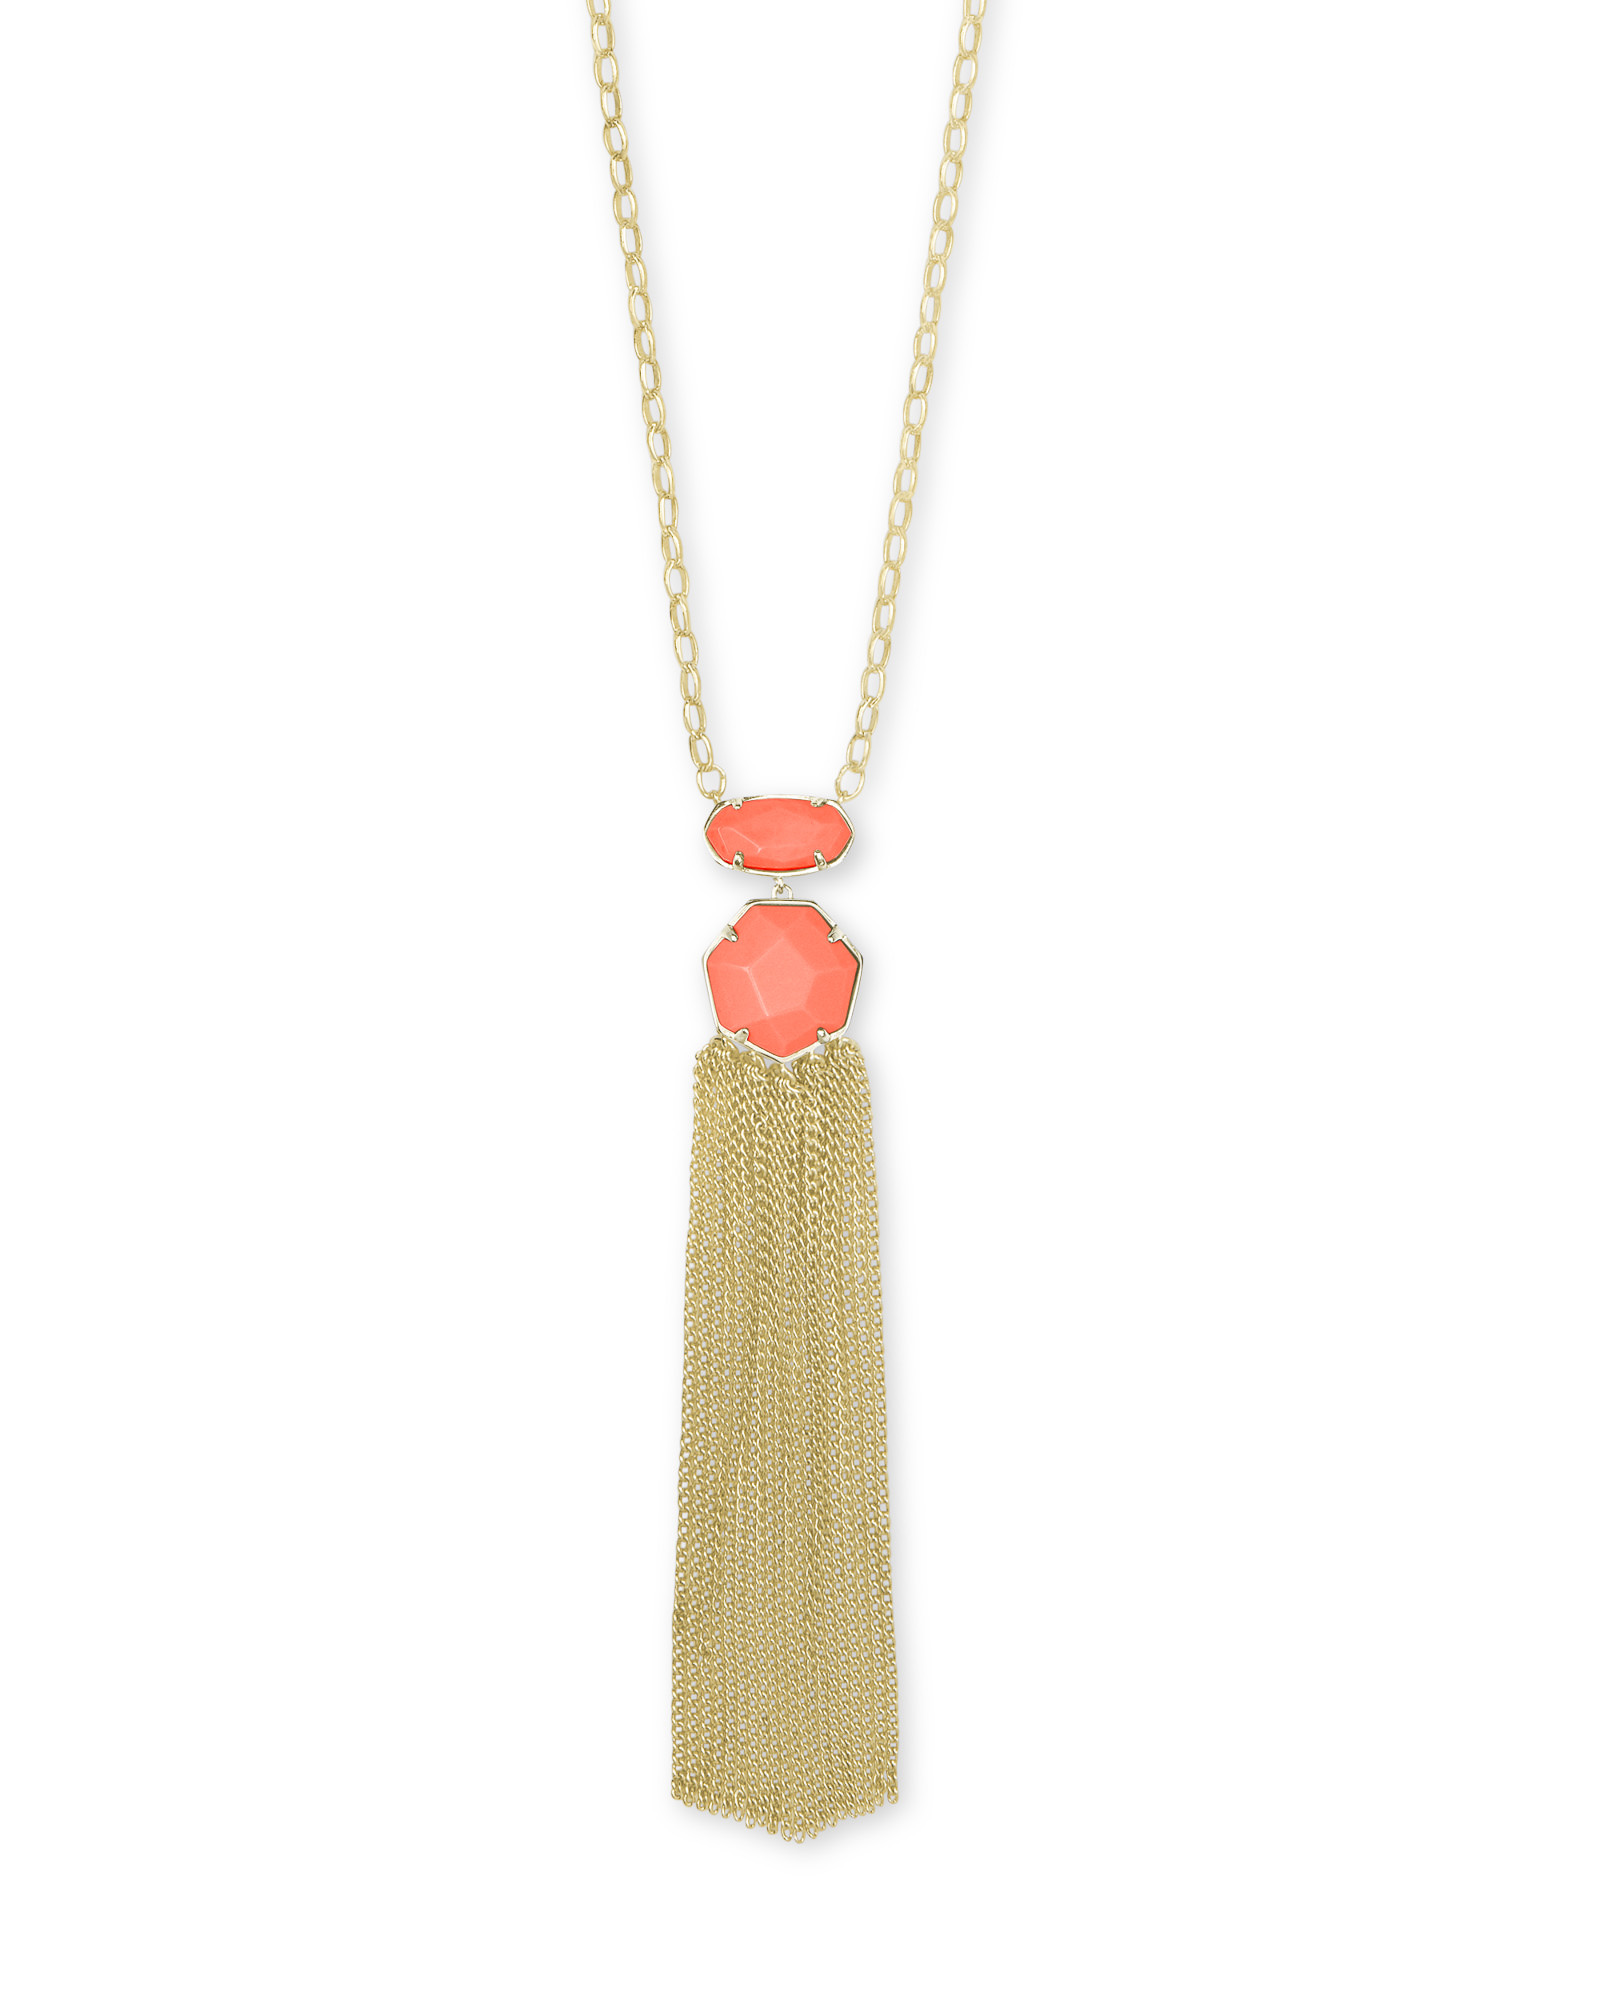 Tae Gold Long Pendant Necklace in Bright Coral Magnesite